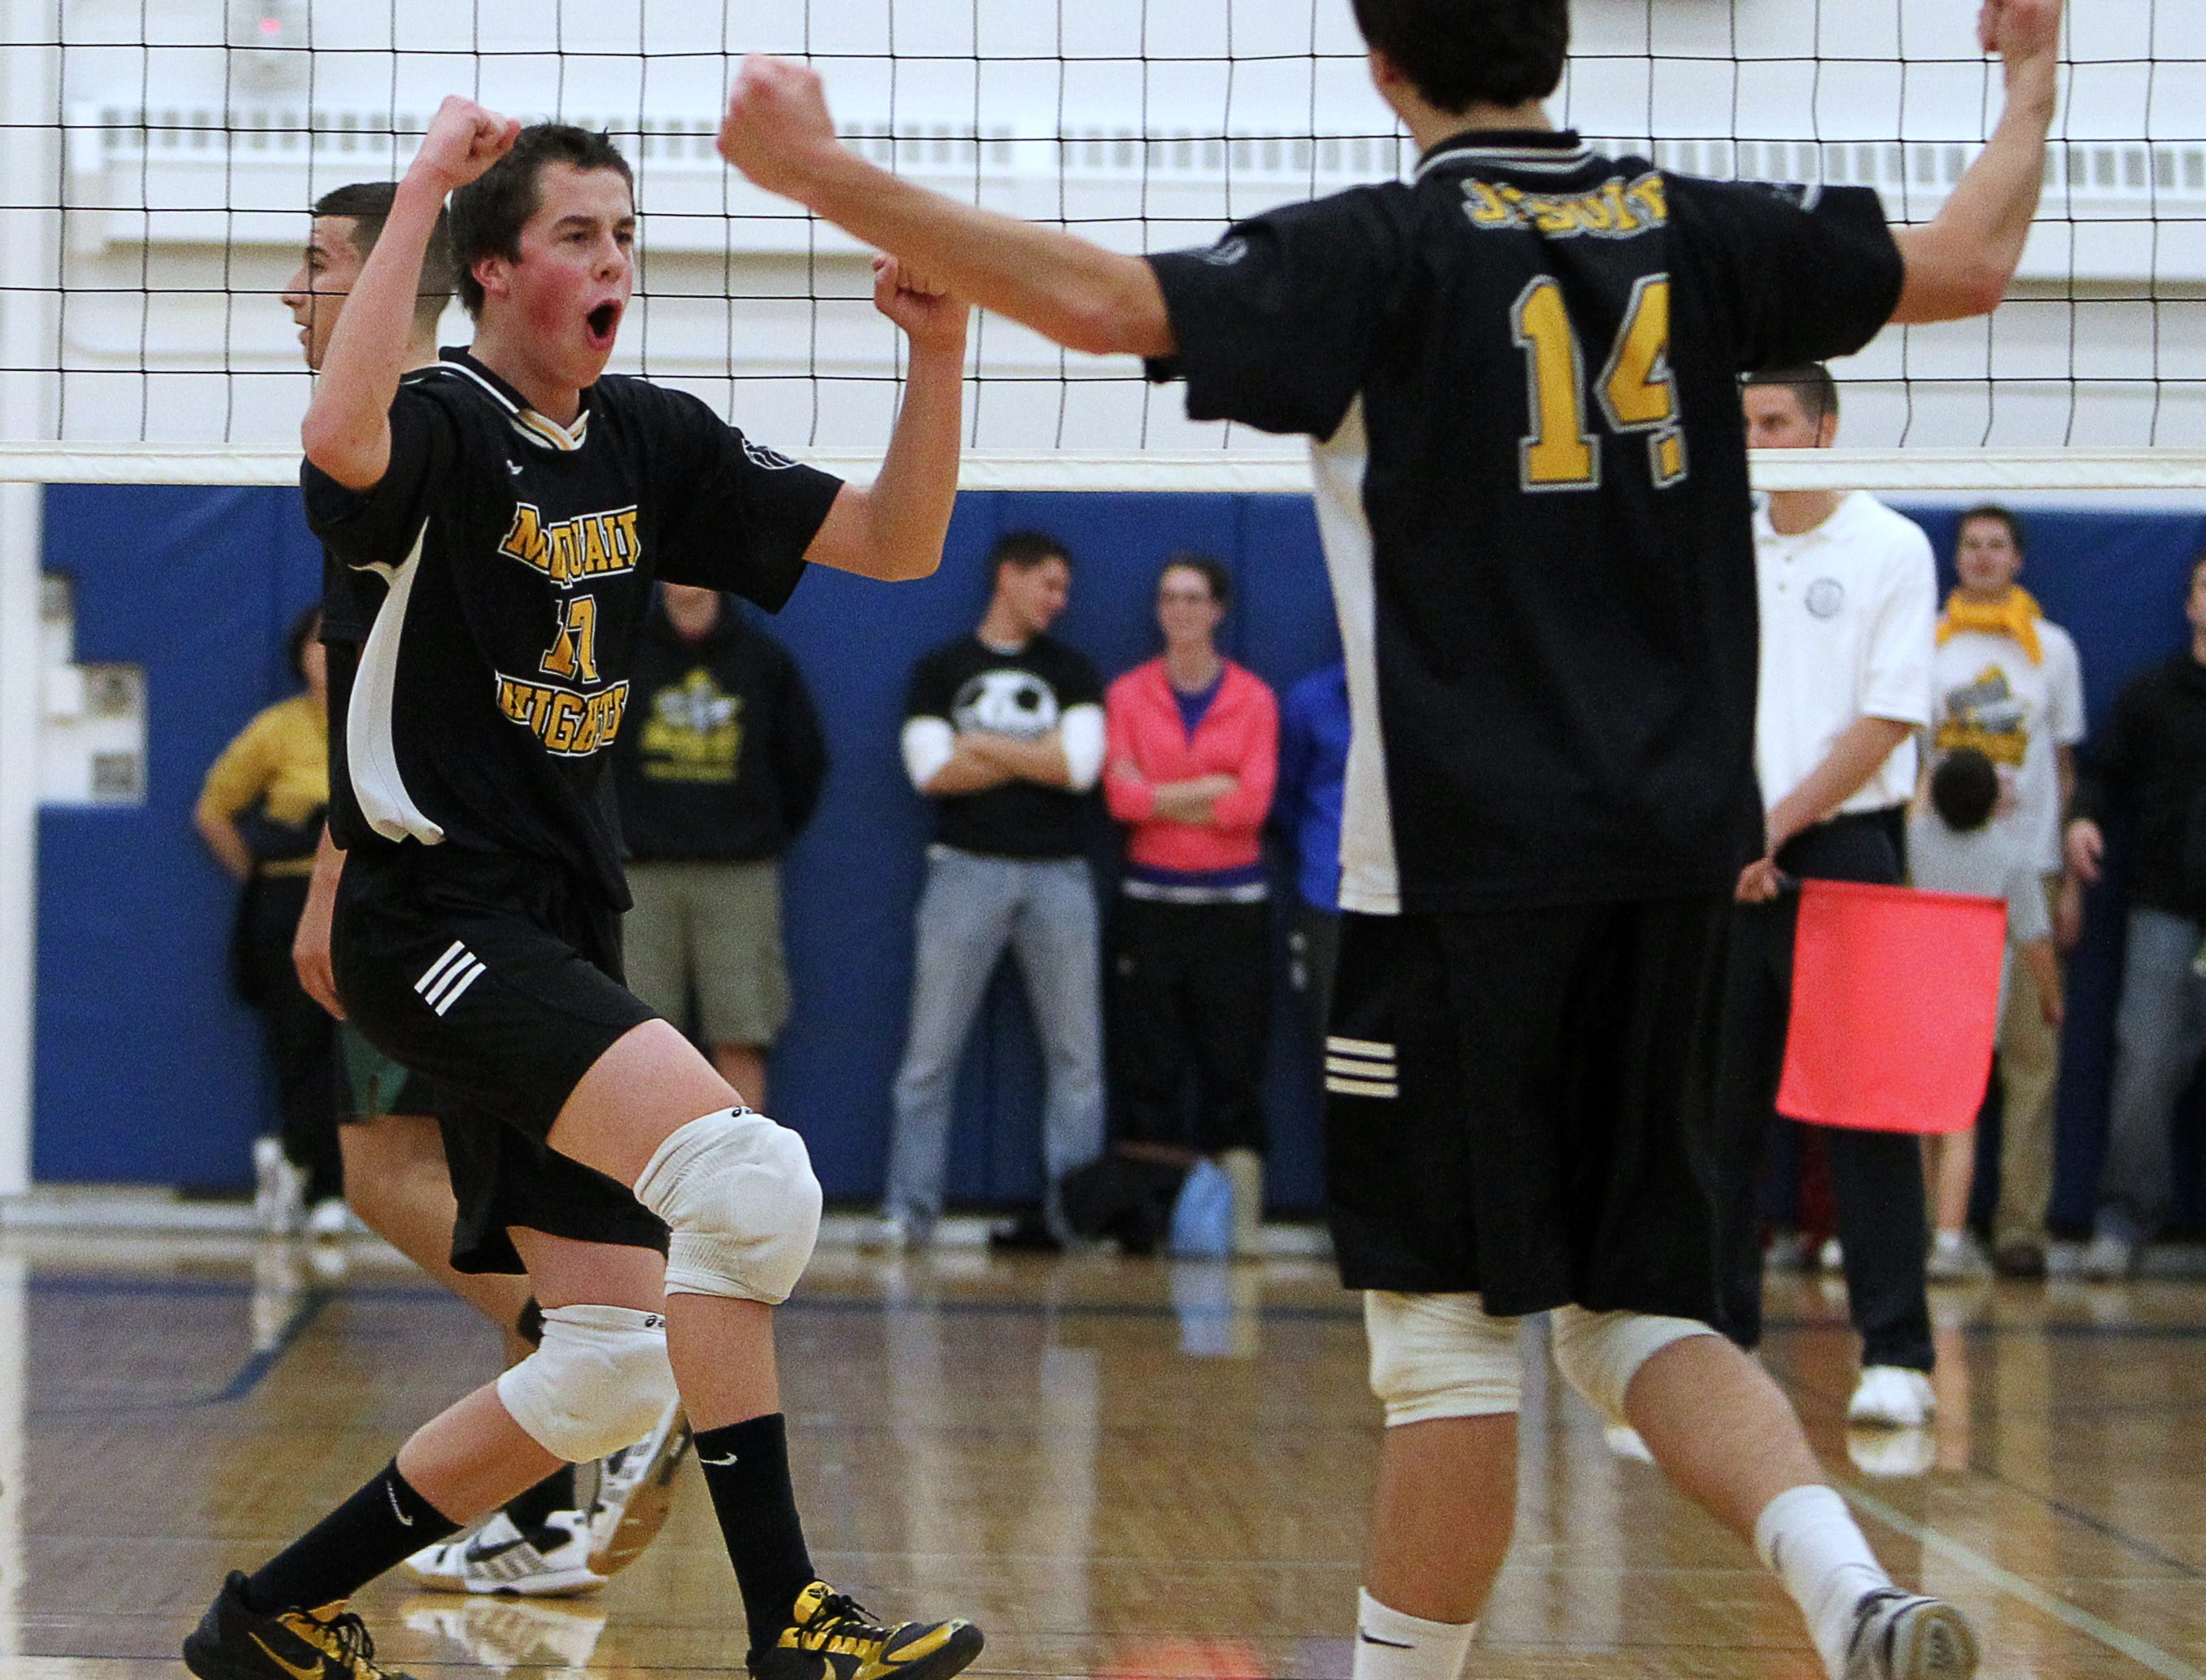 McQuaid's Steve O'Dell, left, celebrates a point with teammate Michael Desino, right, during a volleyball match at Webster Schroeder on Nov. 10, 2010.